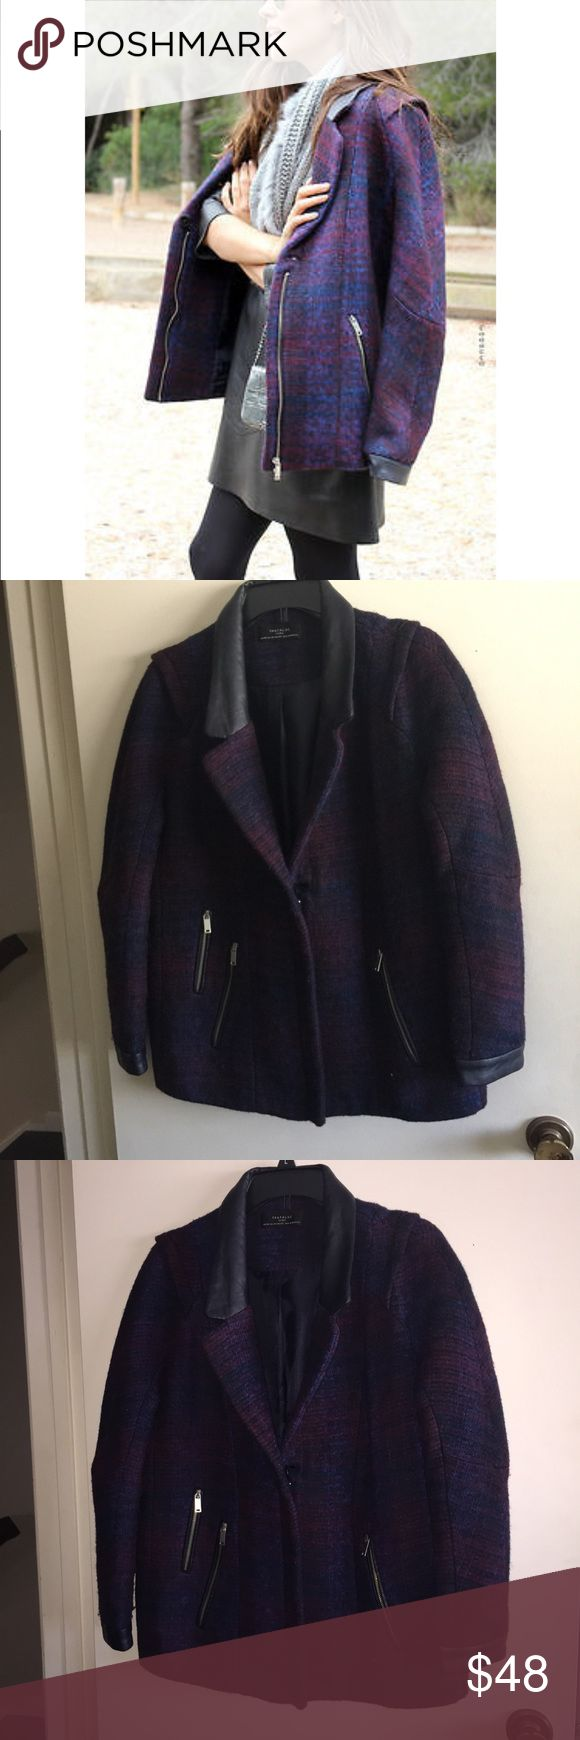 Zara Trafaluc Plaid Coat Gorgeous purple plaid coat by Zara Trafaluc with zipper details and faux leather shoulders, ideal for the transition from winter to spring!   ✨just trying to clean out my closet, make a reasonable offer!✨ Zara Jackets & Coats